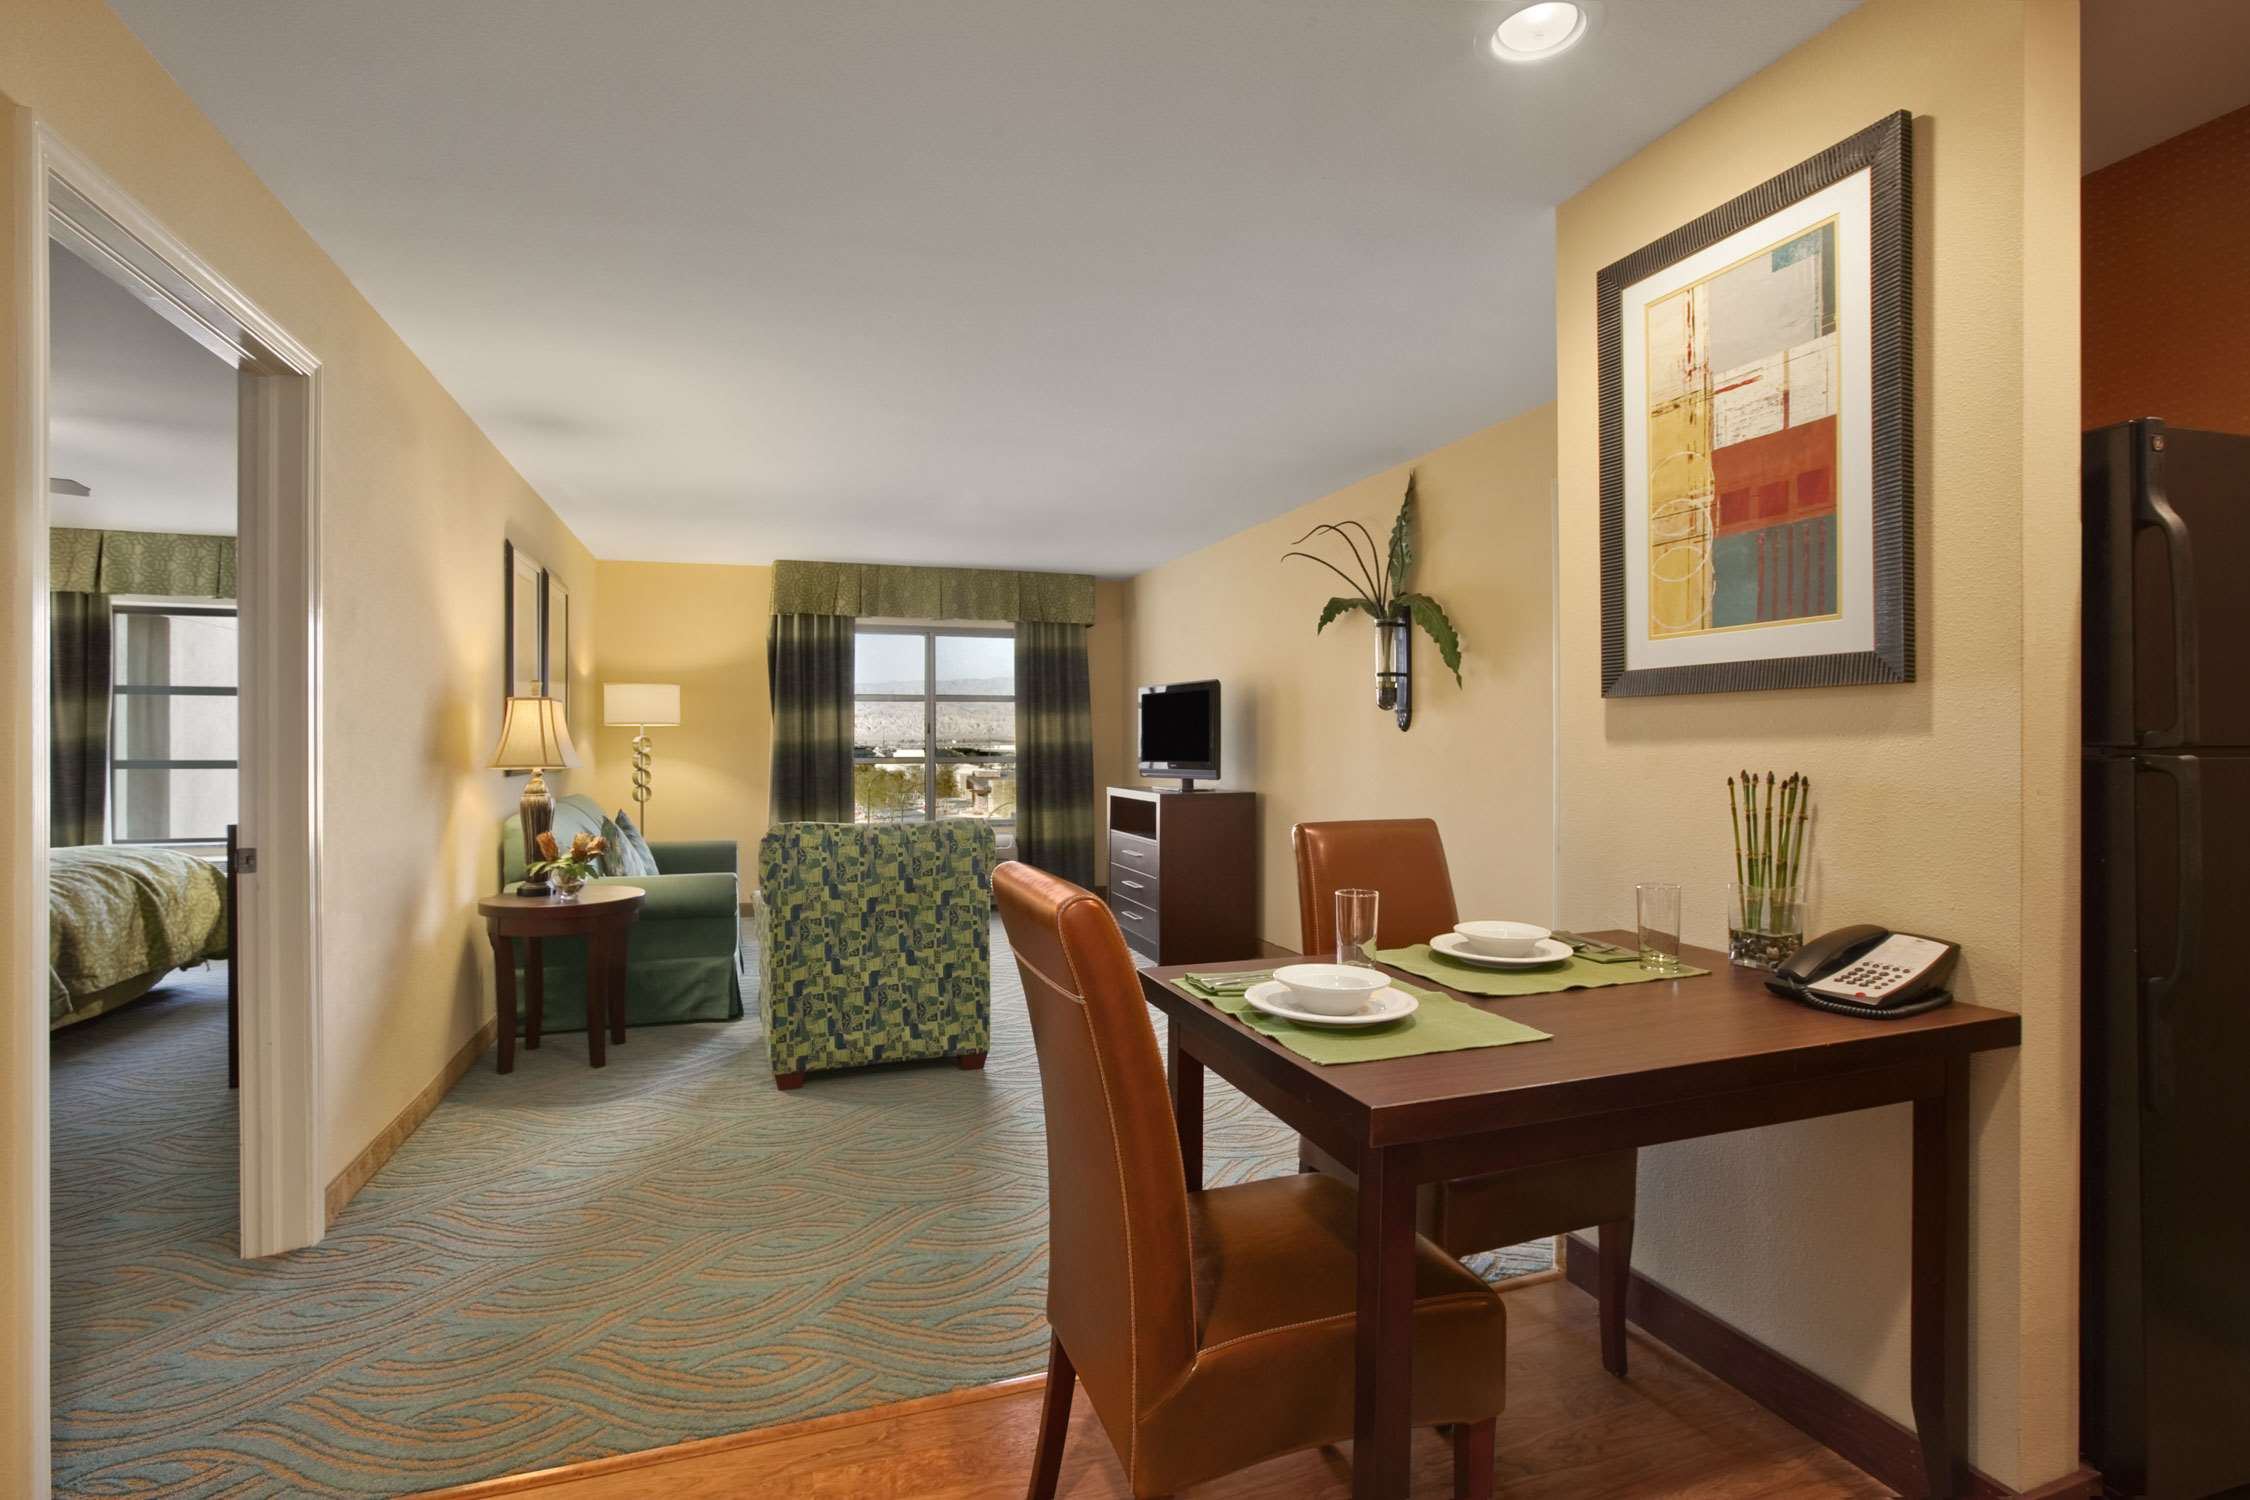 Homewood Suites by Hilton Palm Desert image 21